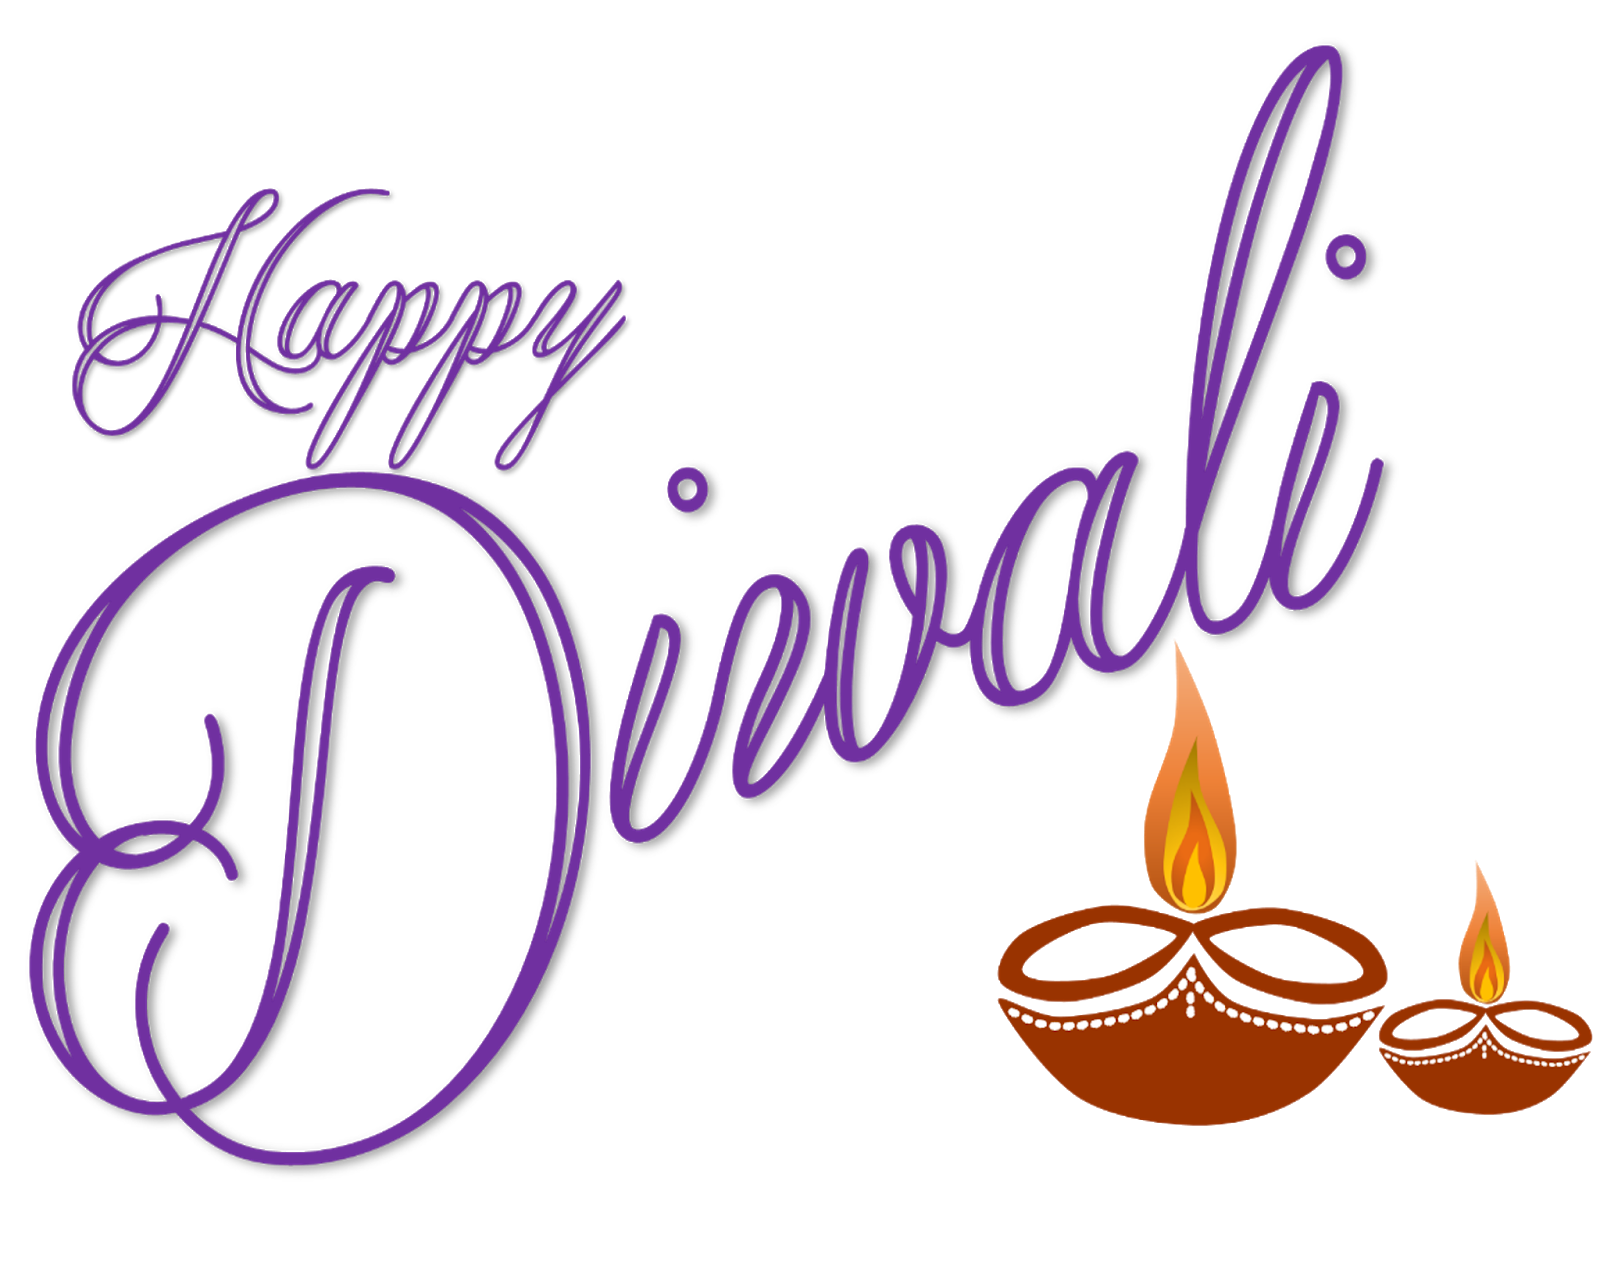 Clipart Creationz: Happy Diwali Wishes Free Clipart.